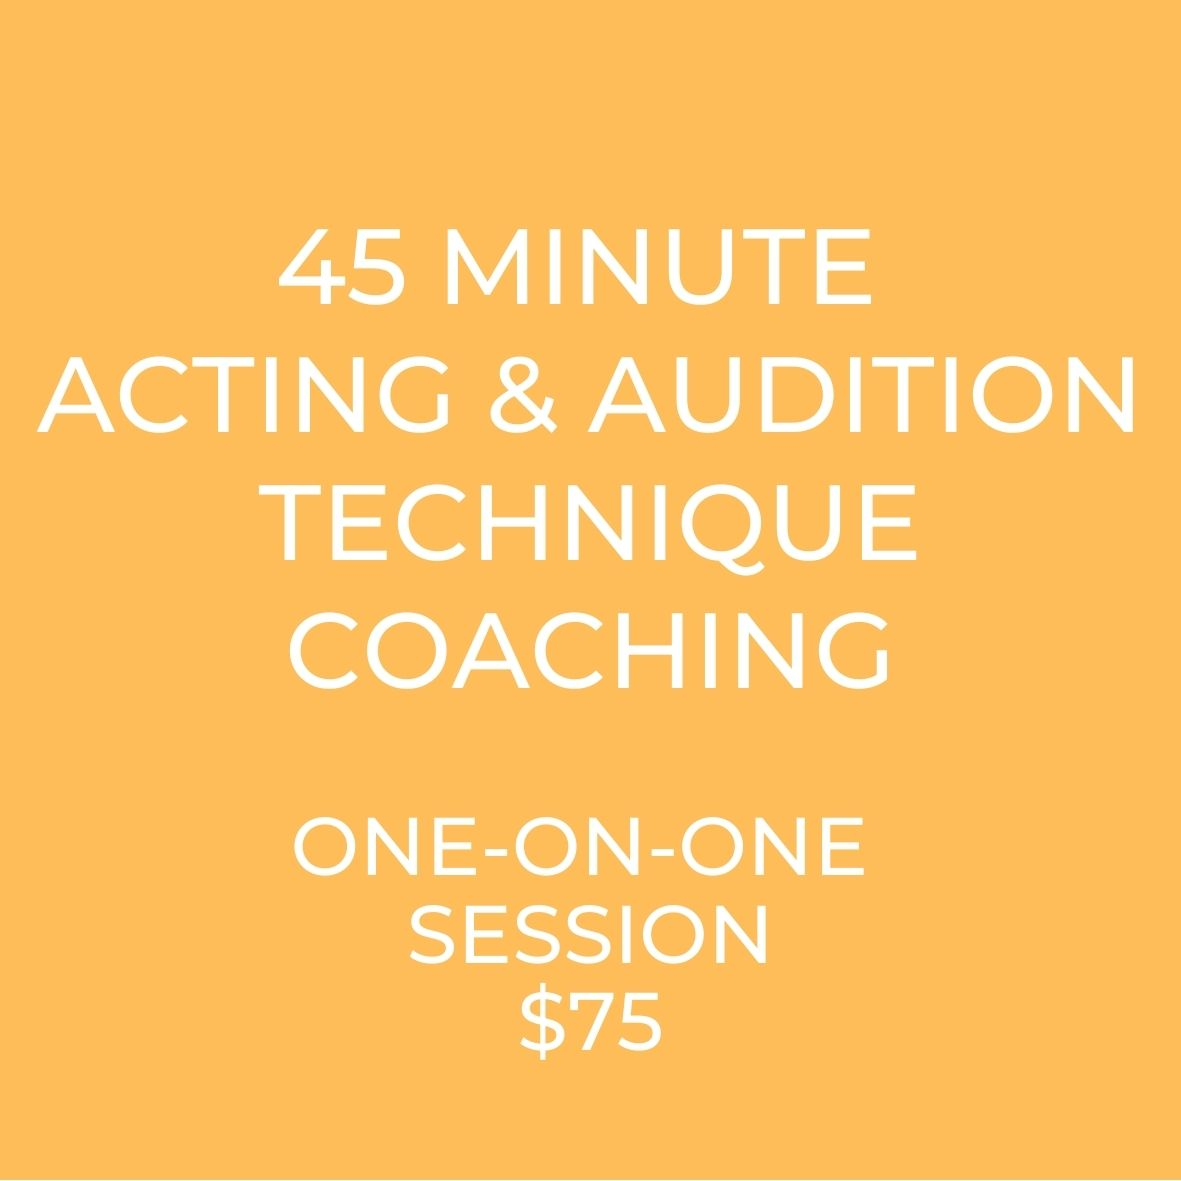 Acting Coaching and Audition Coaching. Private one-on-one coaching to learn how to act and become a professional actor.